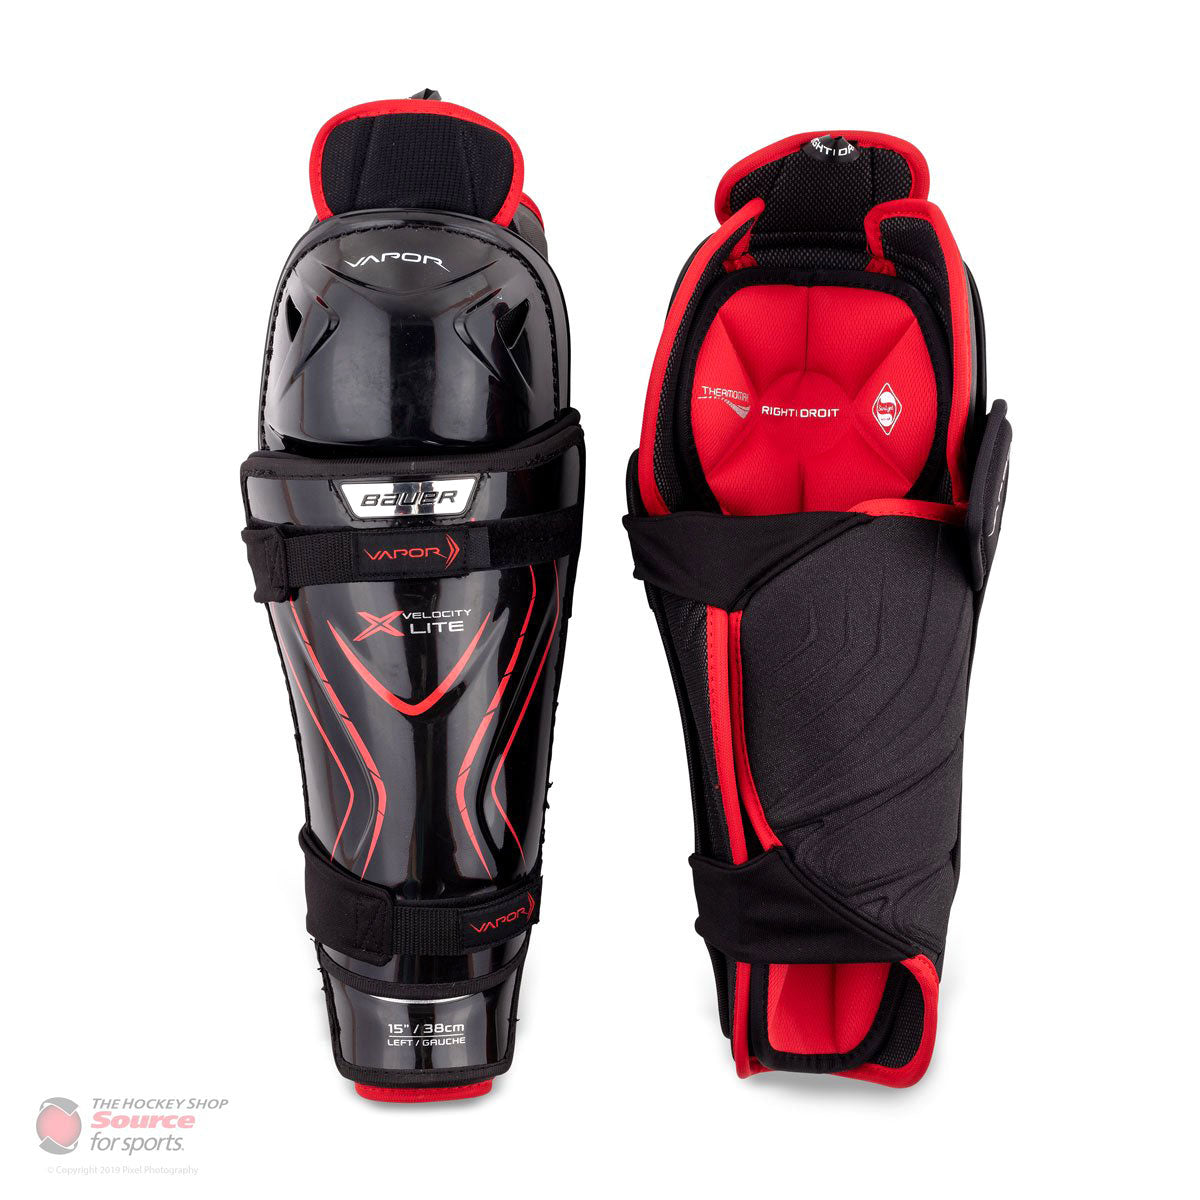 Bauer Vapor X Velocity Lite Senior Shin Guards